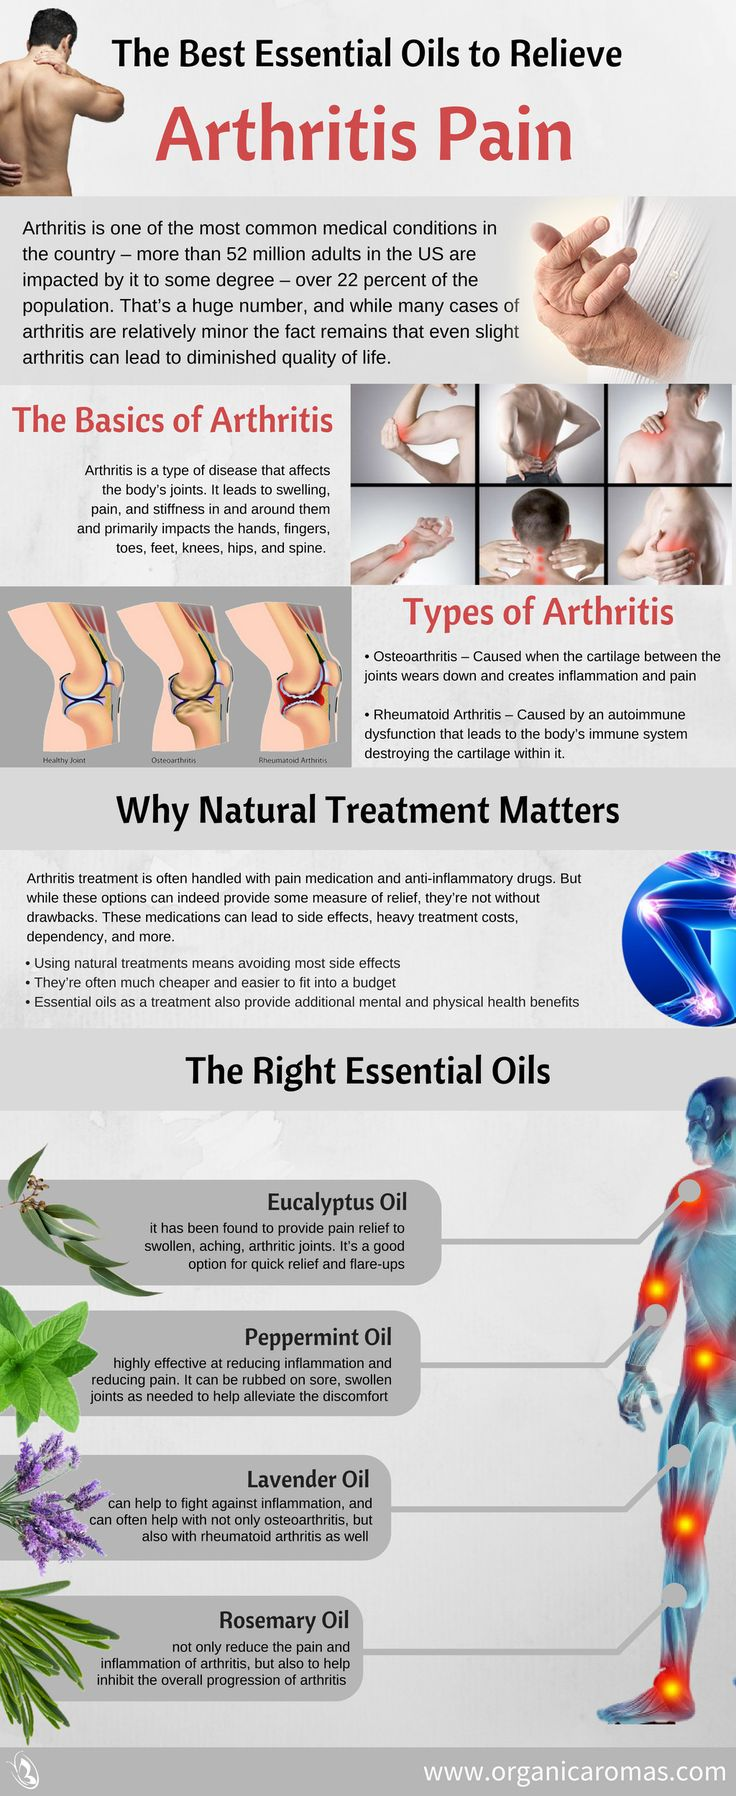 The Best Essential Oils To Relieve Arthritis Pain